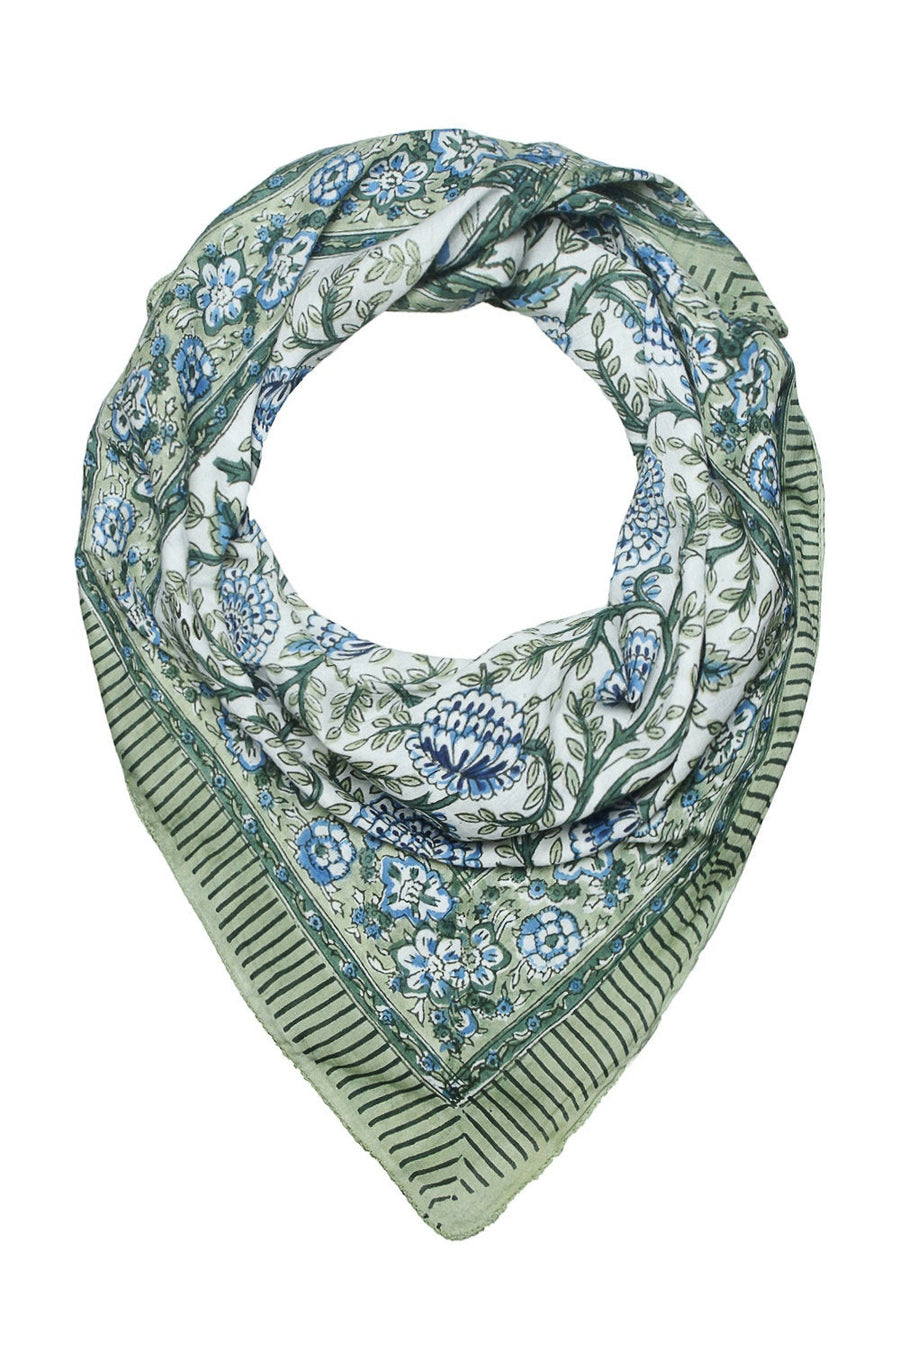 Soft cotton hand block printed scarf in white with blue floral & green leaves